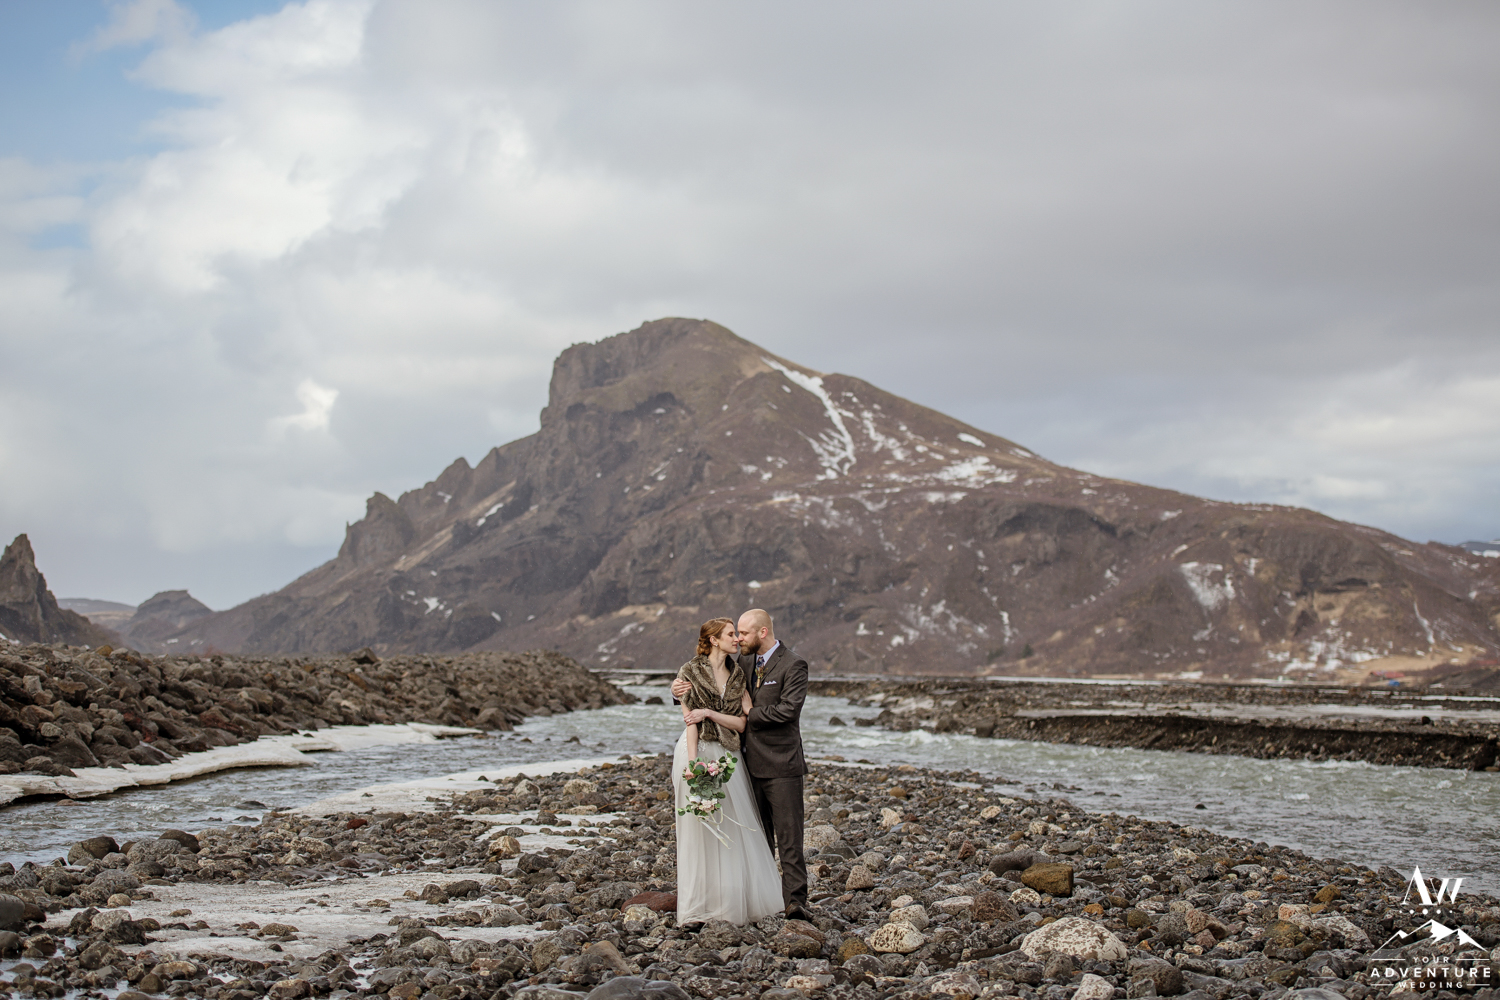 Adventurous Hiking Elopement couple standing in front of a mountain